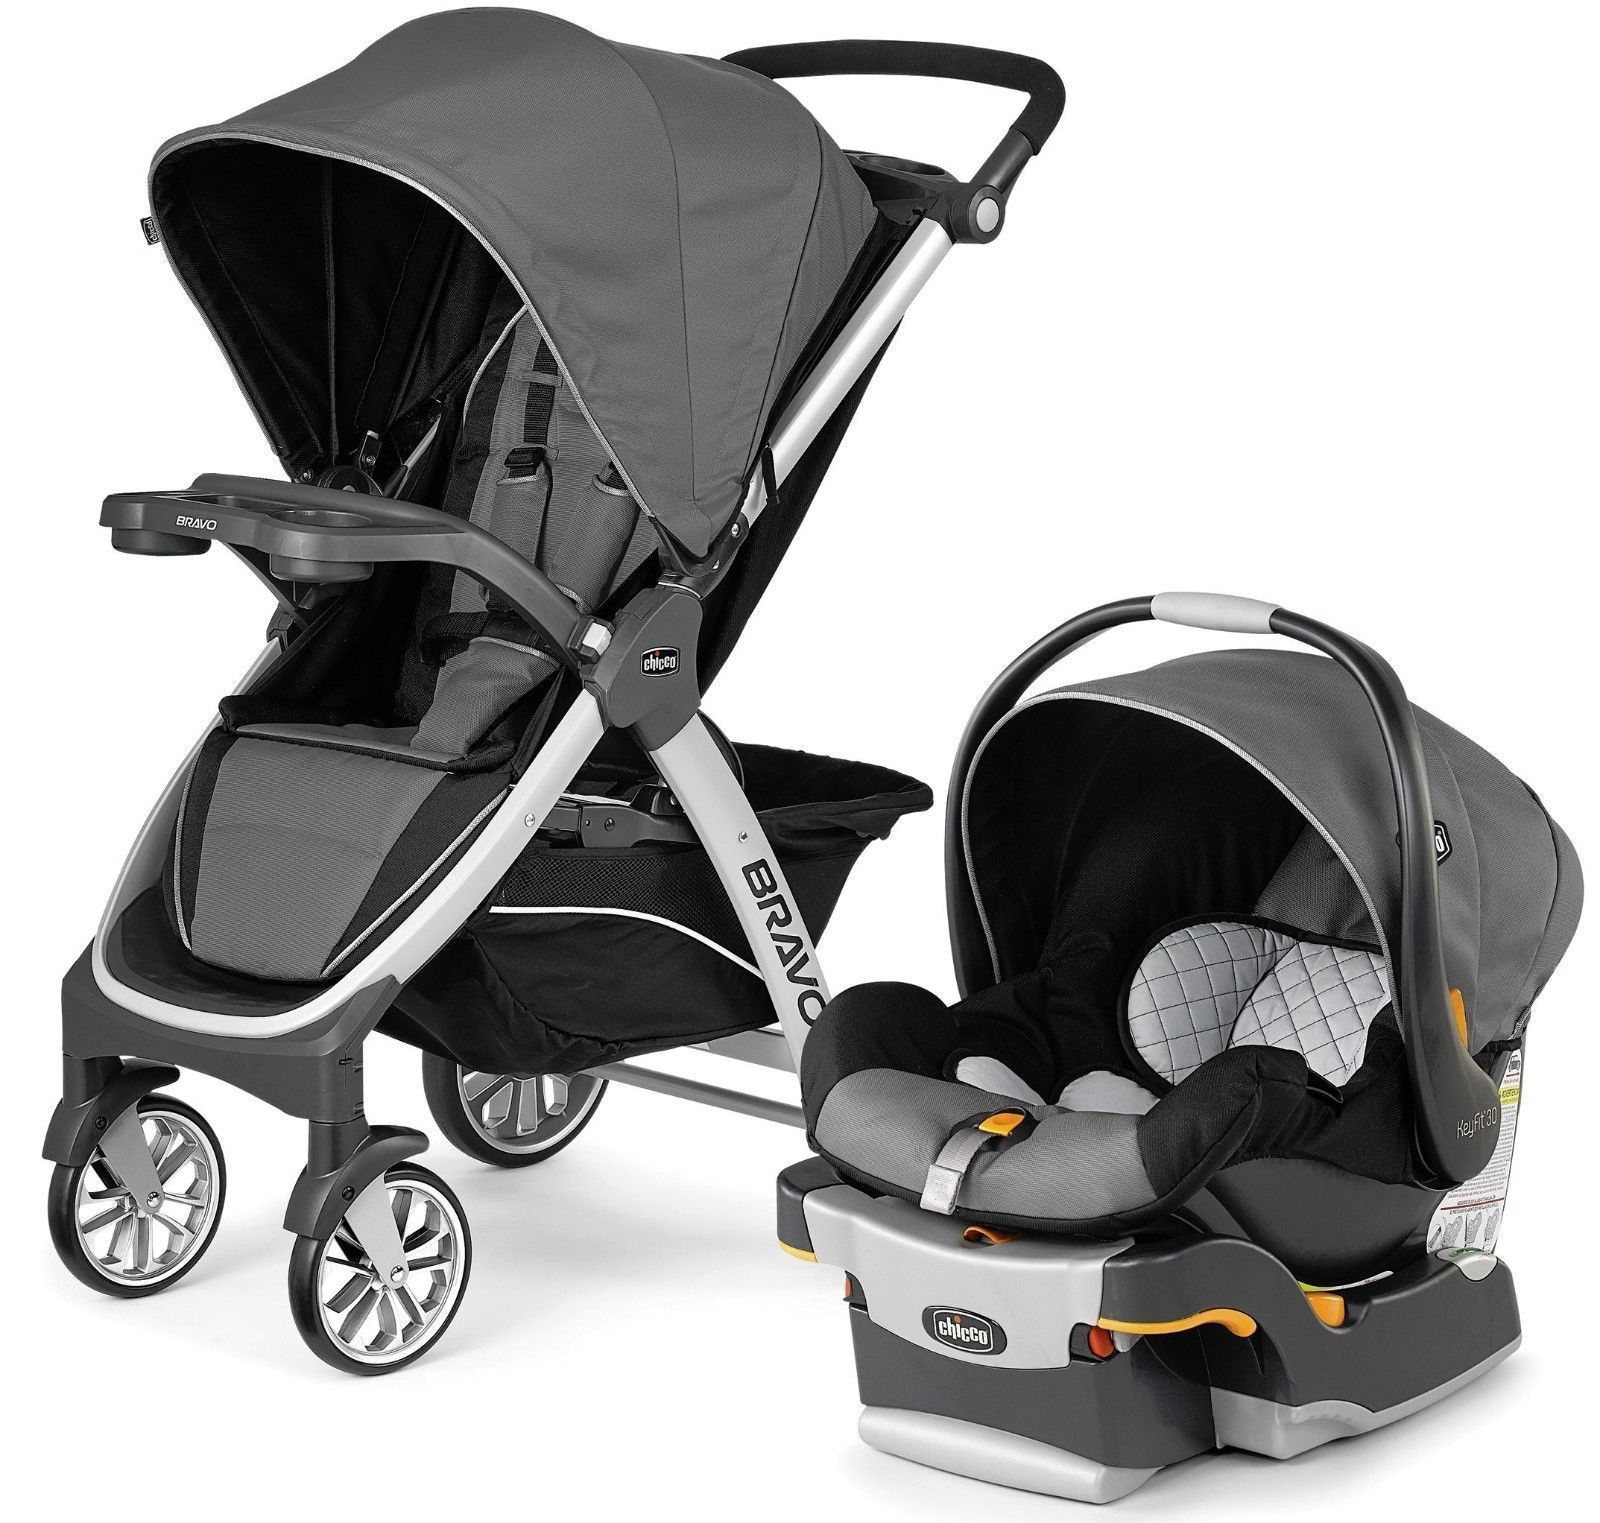 quinny moodd pebble pack  grey crackle  baby strollers  - chicco bravo trio travel system in baby travel system stroller orion